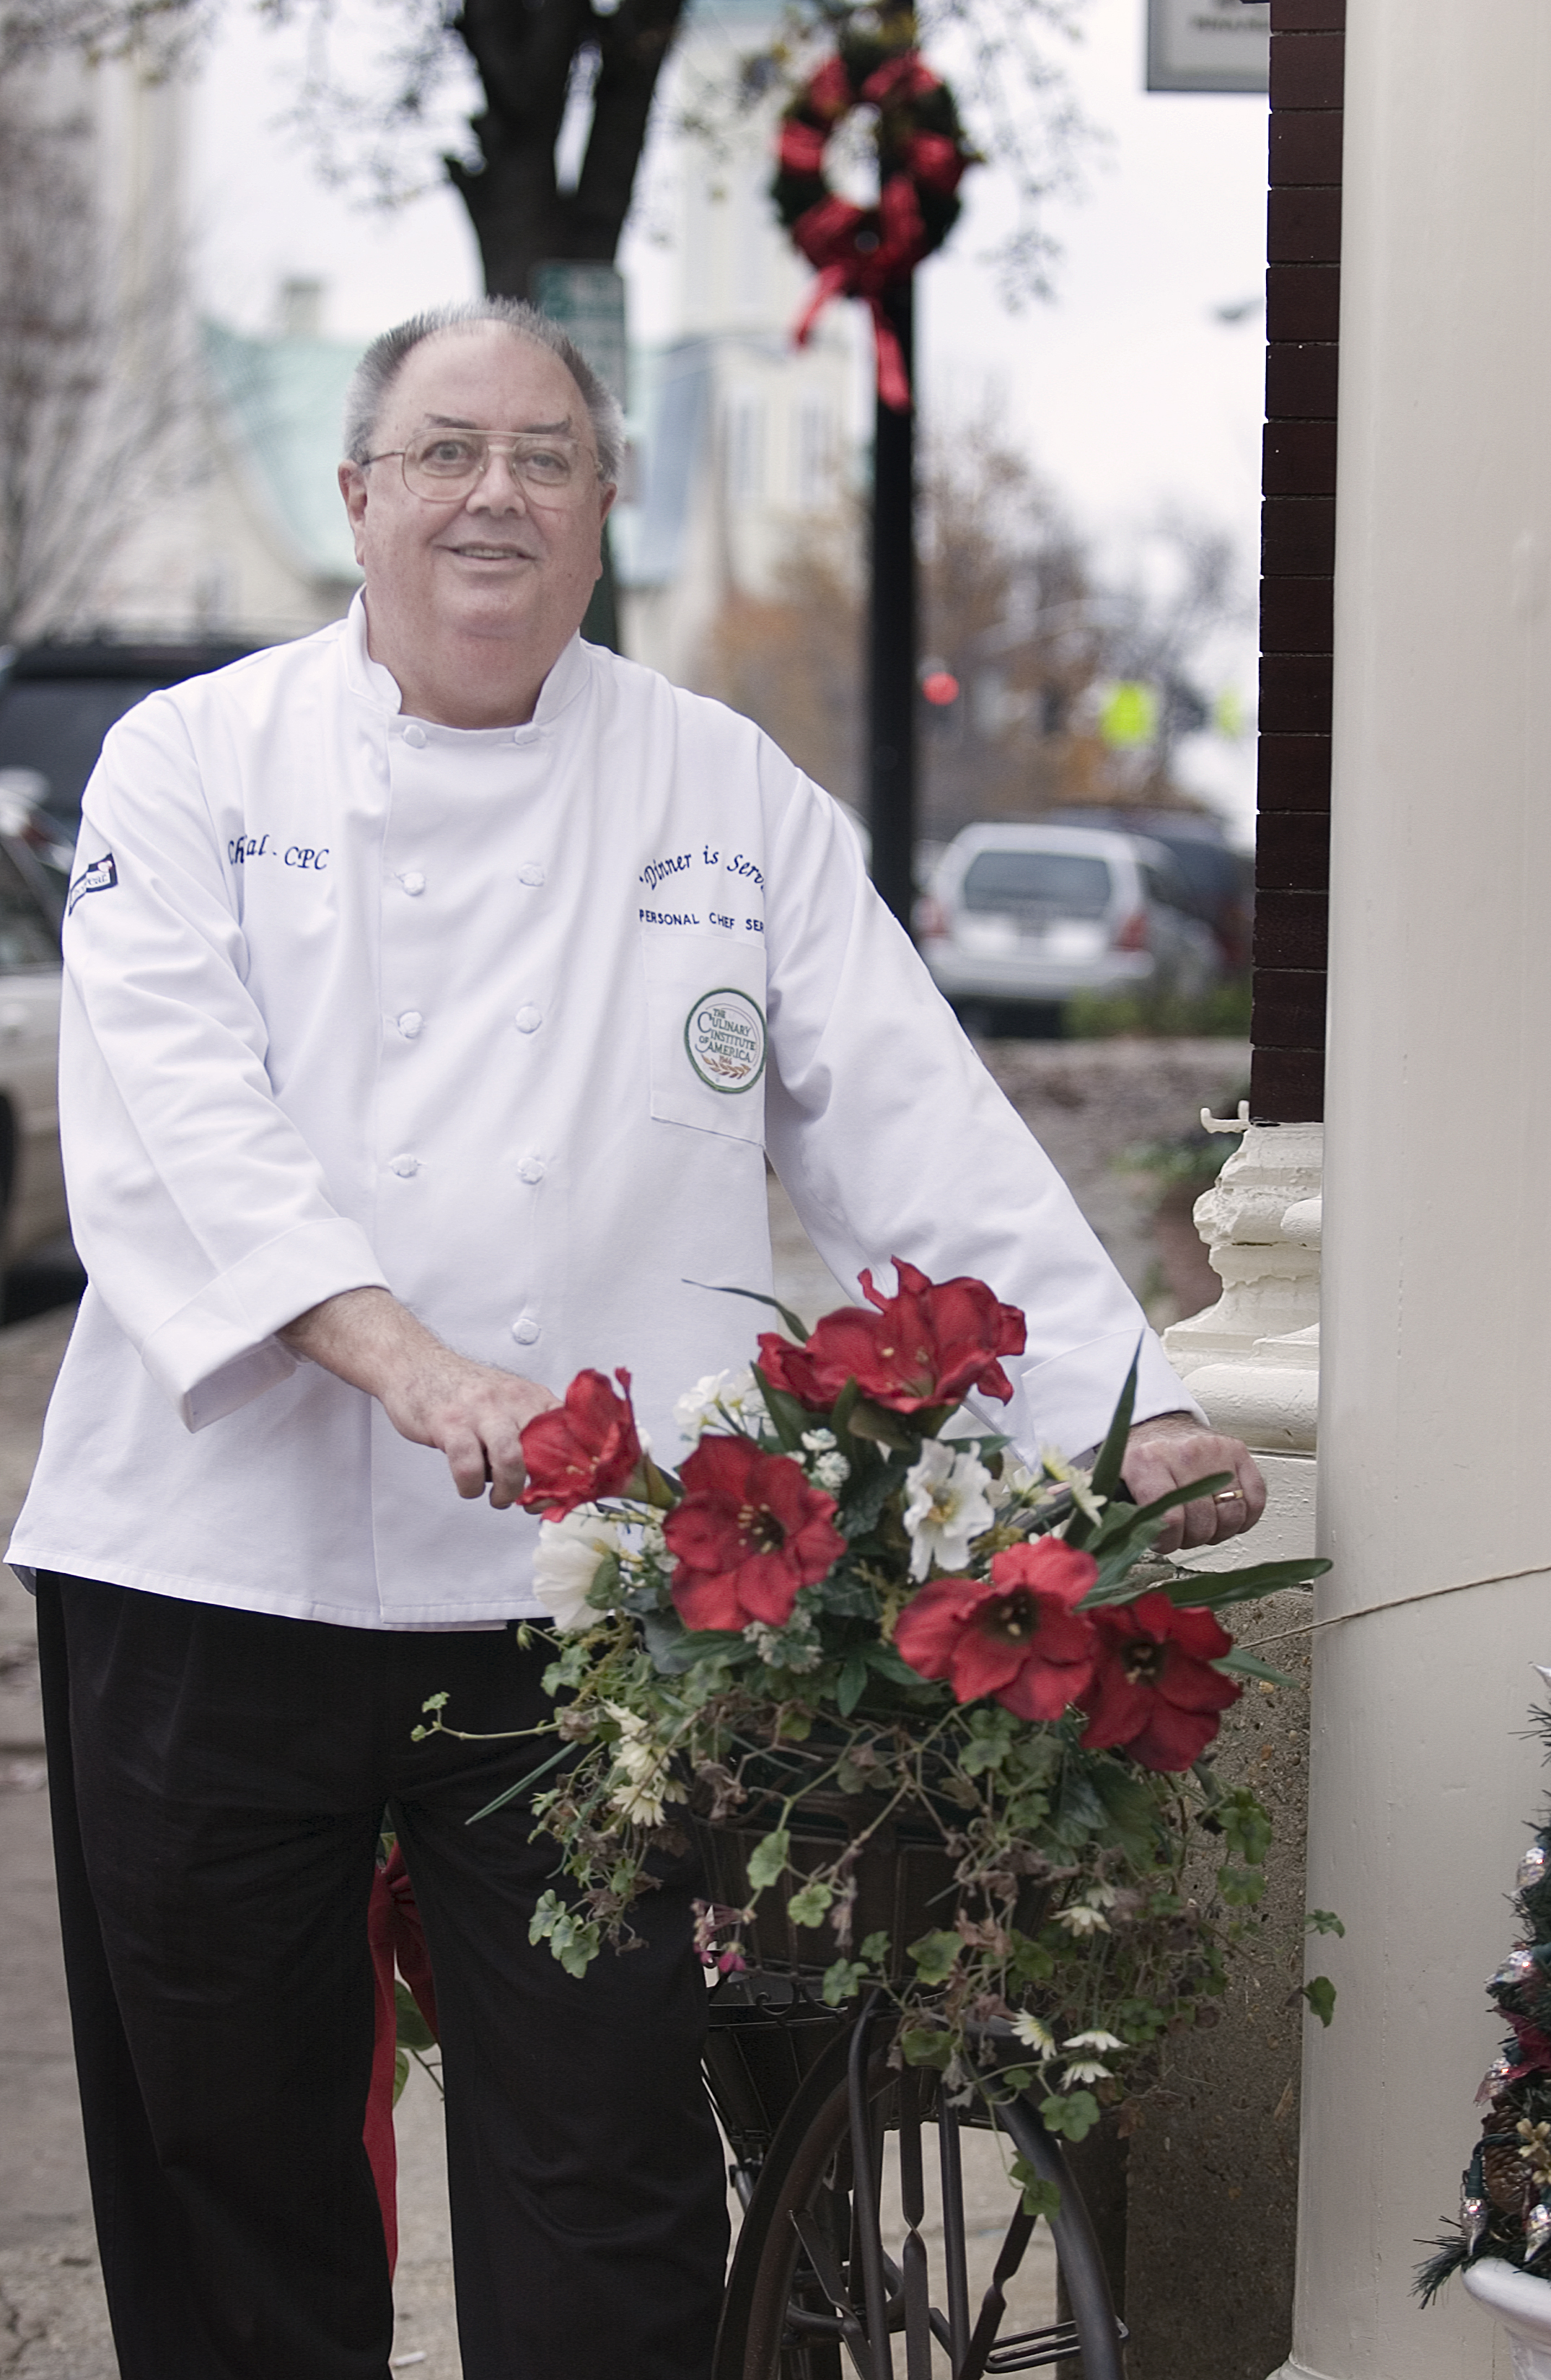 A Taste of the Holidays, with Chef Cal.